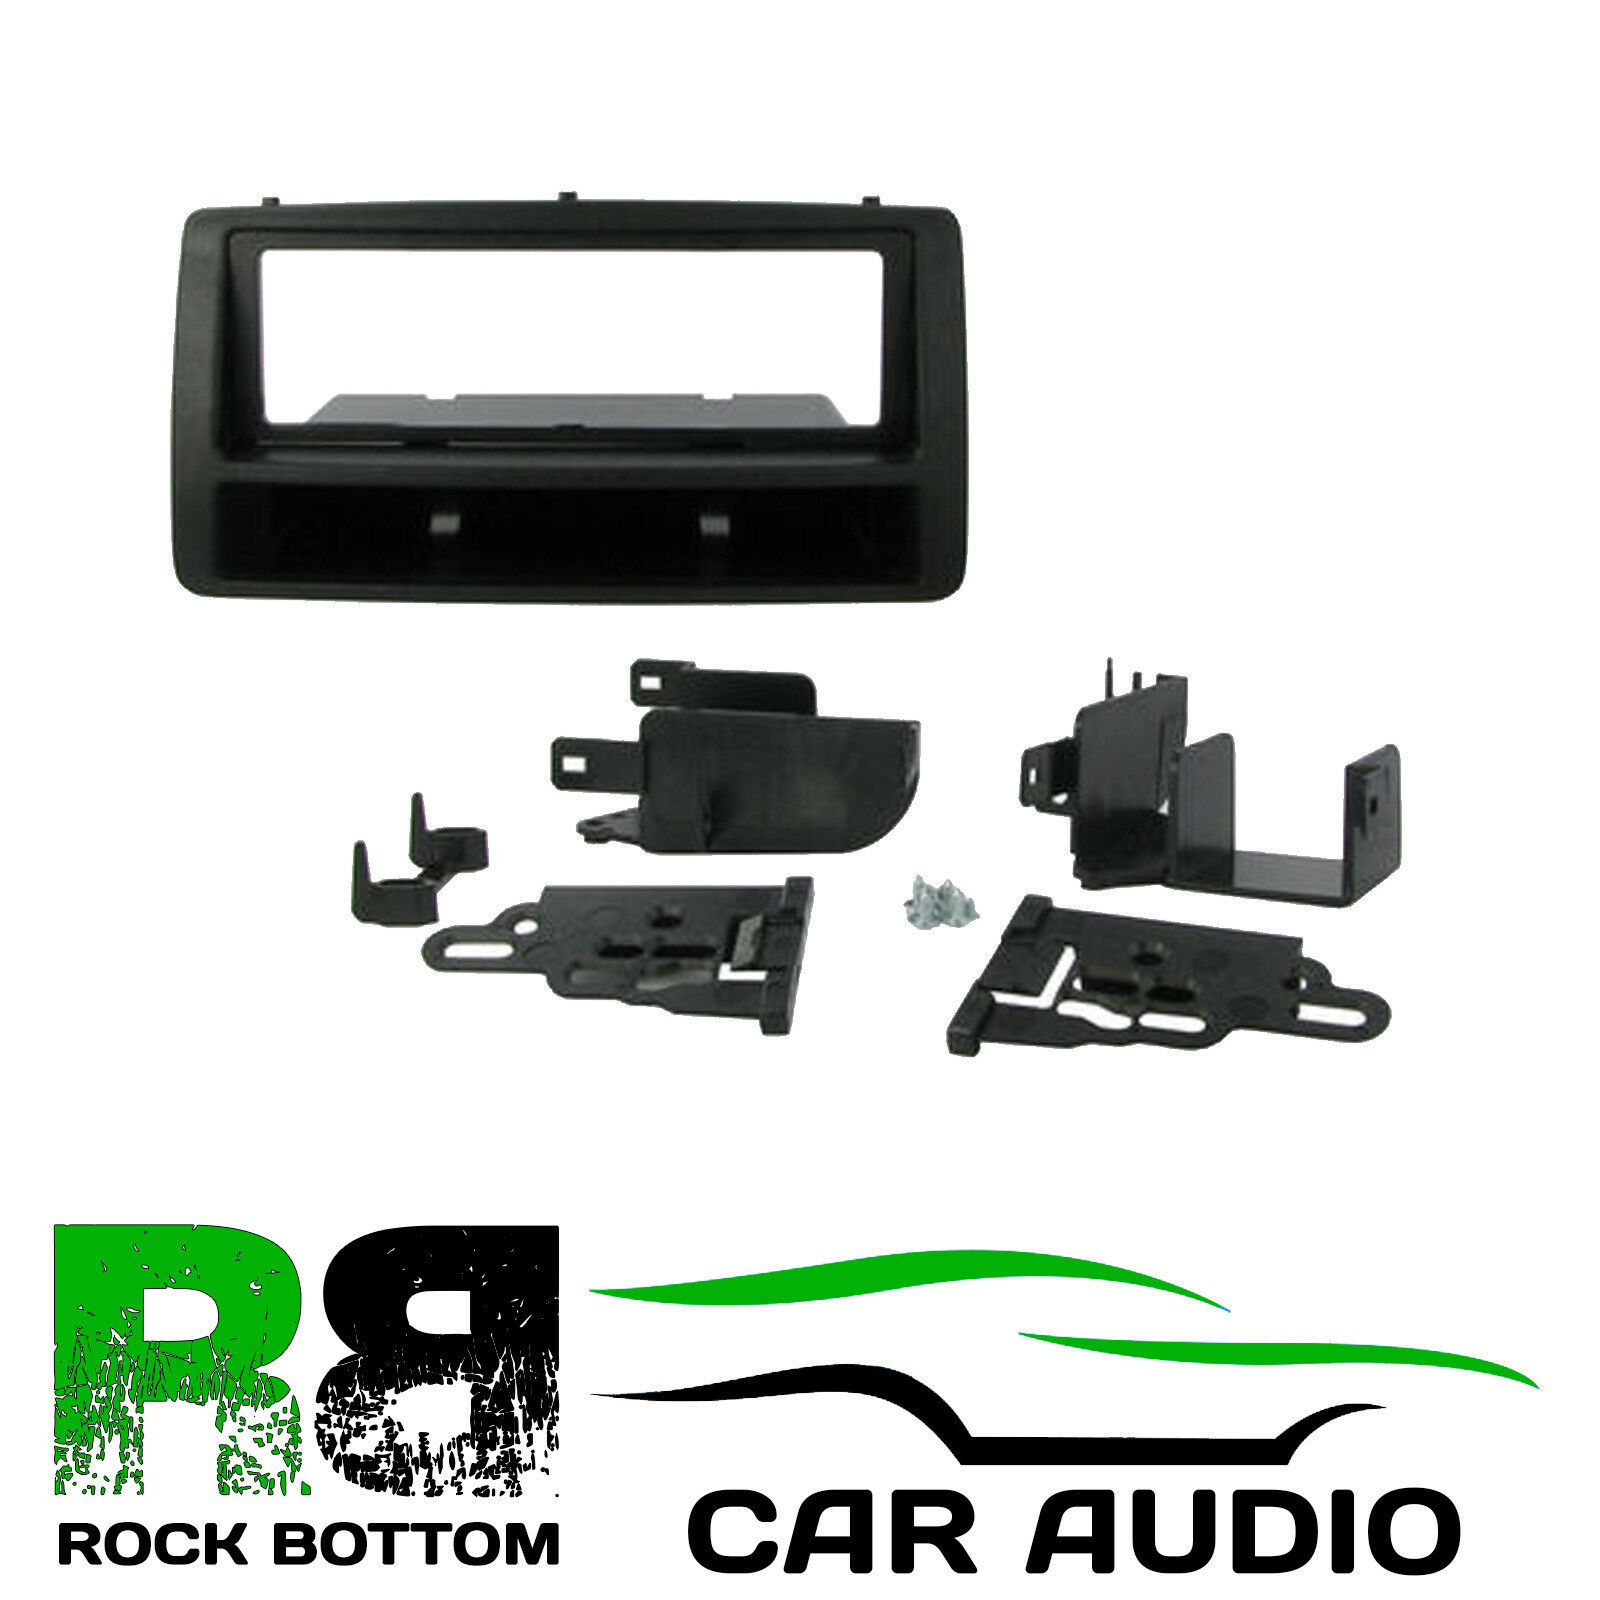 Toyota Corolla E12 2003 08 Jvc Aux Mp3 Usb Cd Stereo 1 Din Fascia 20012006 Round Pin Car Surround Wiring Fitting Kit 2 Of 5